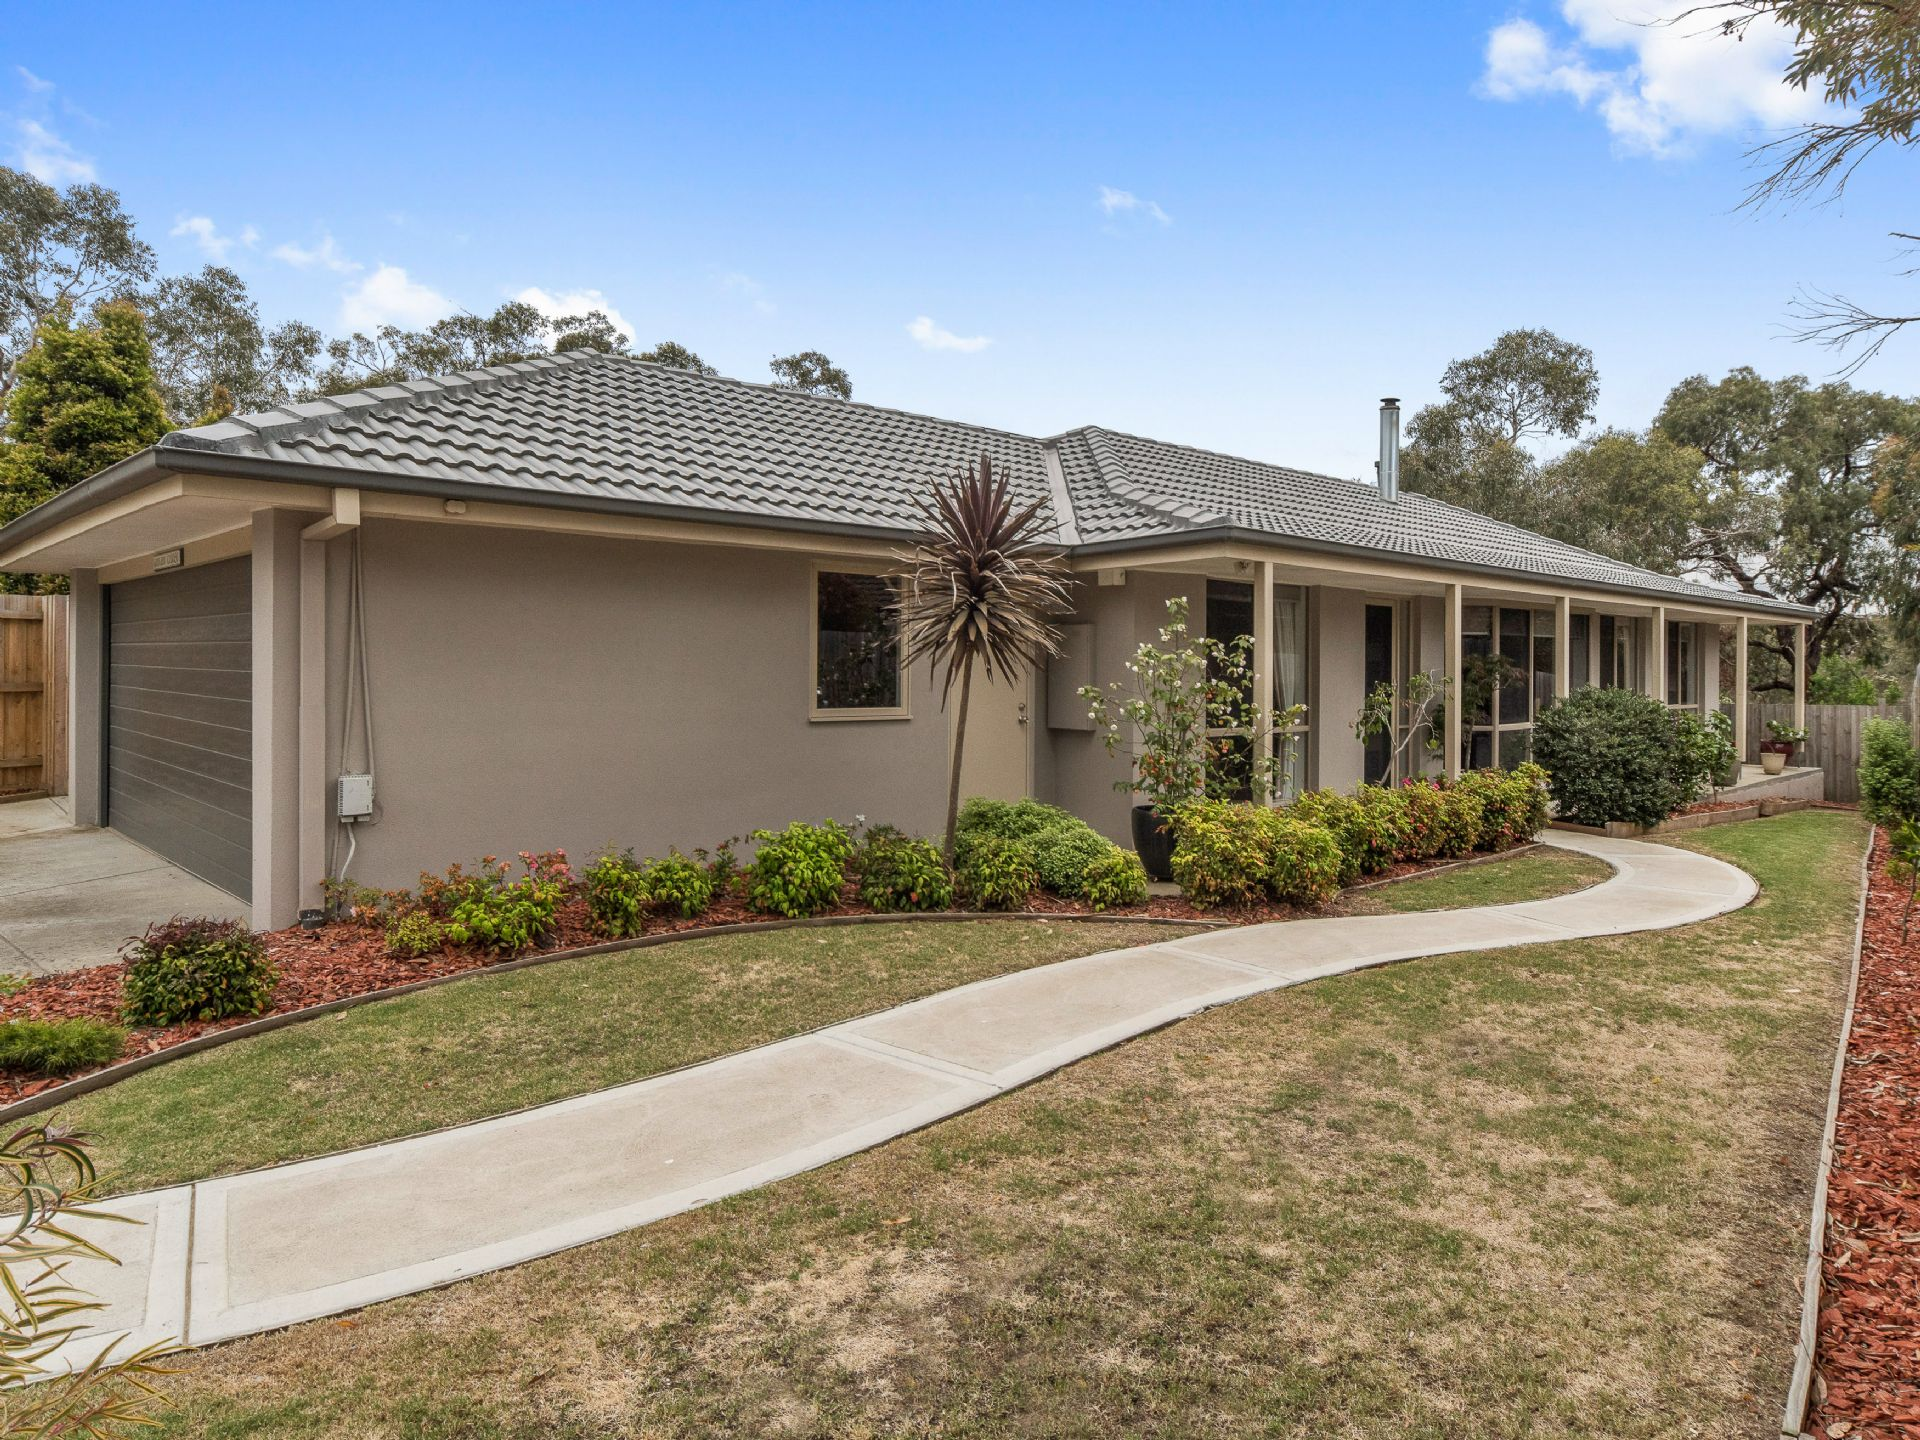 9 Oxley Court, LANGWARRIN, VIC, 3910 - Image